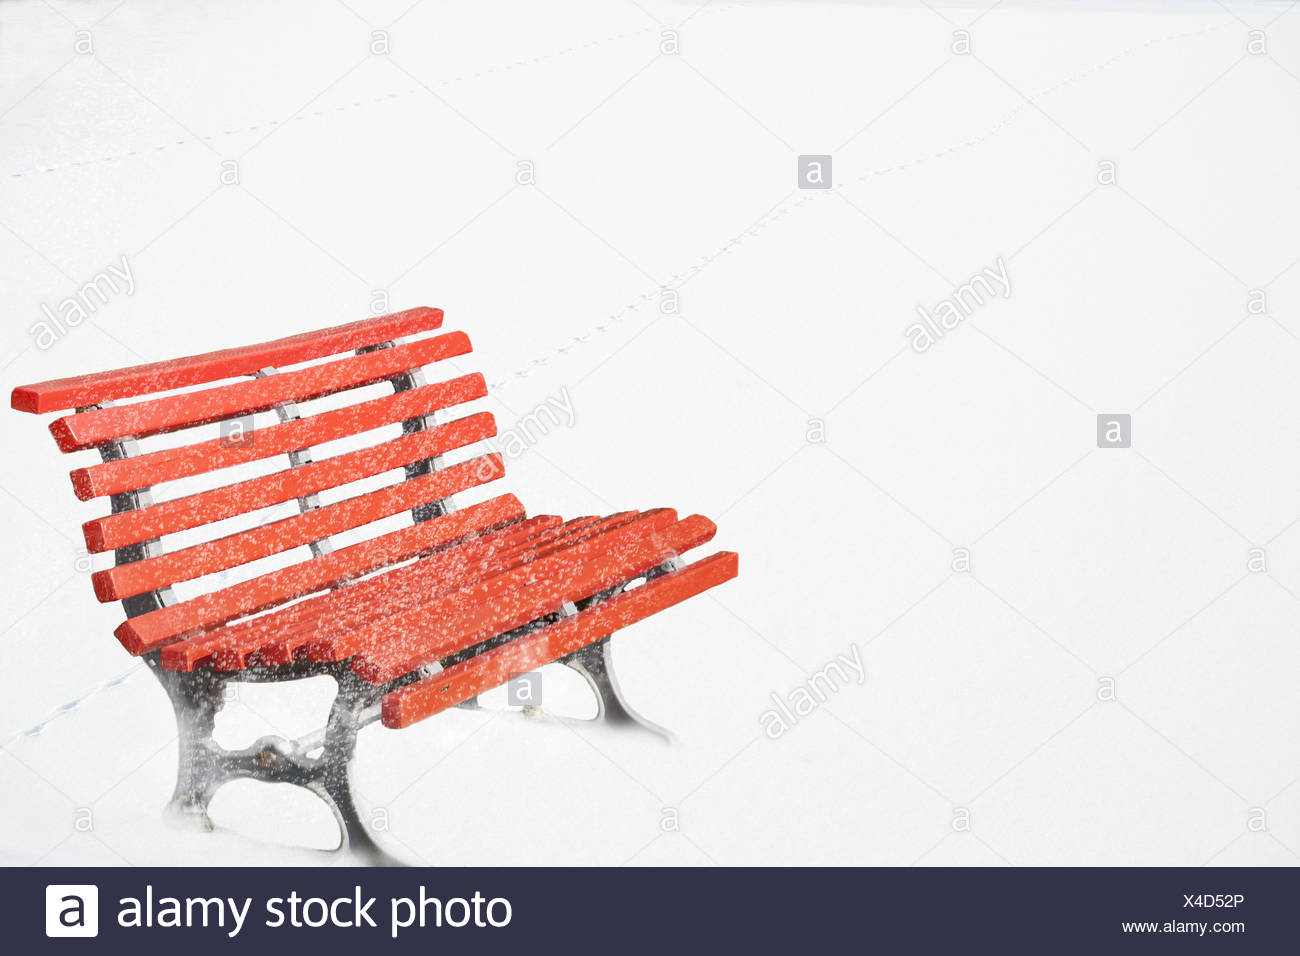 Rib Bank Red Saddle Snow Winter Bank Garden Bench Park Bench Red